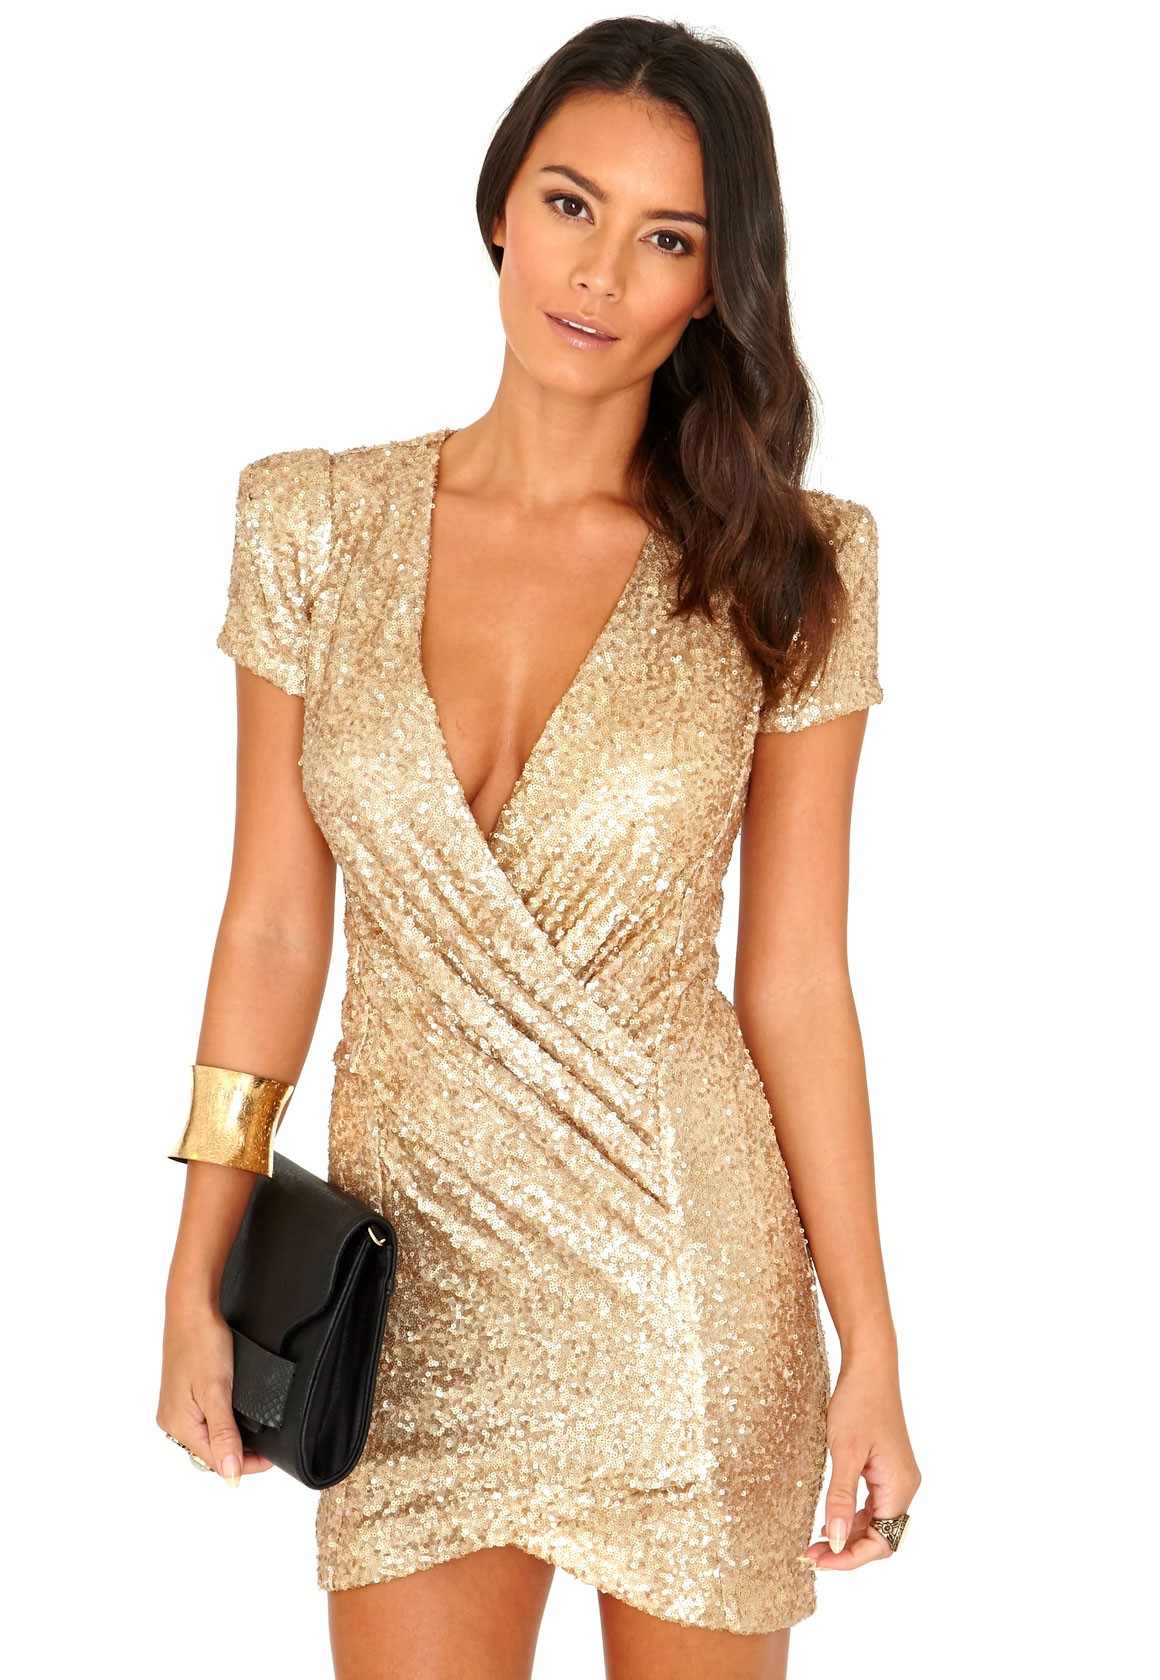 Metallic Sparkle Dress Amp Guide Of Selecting